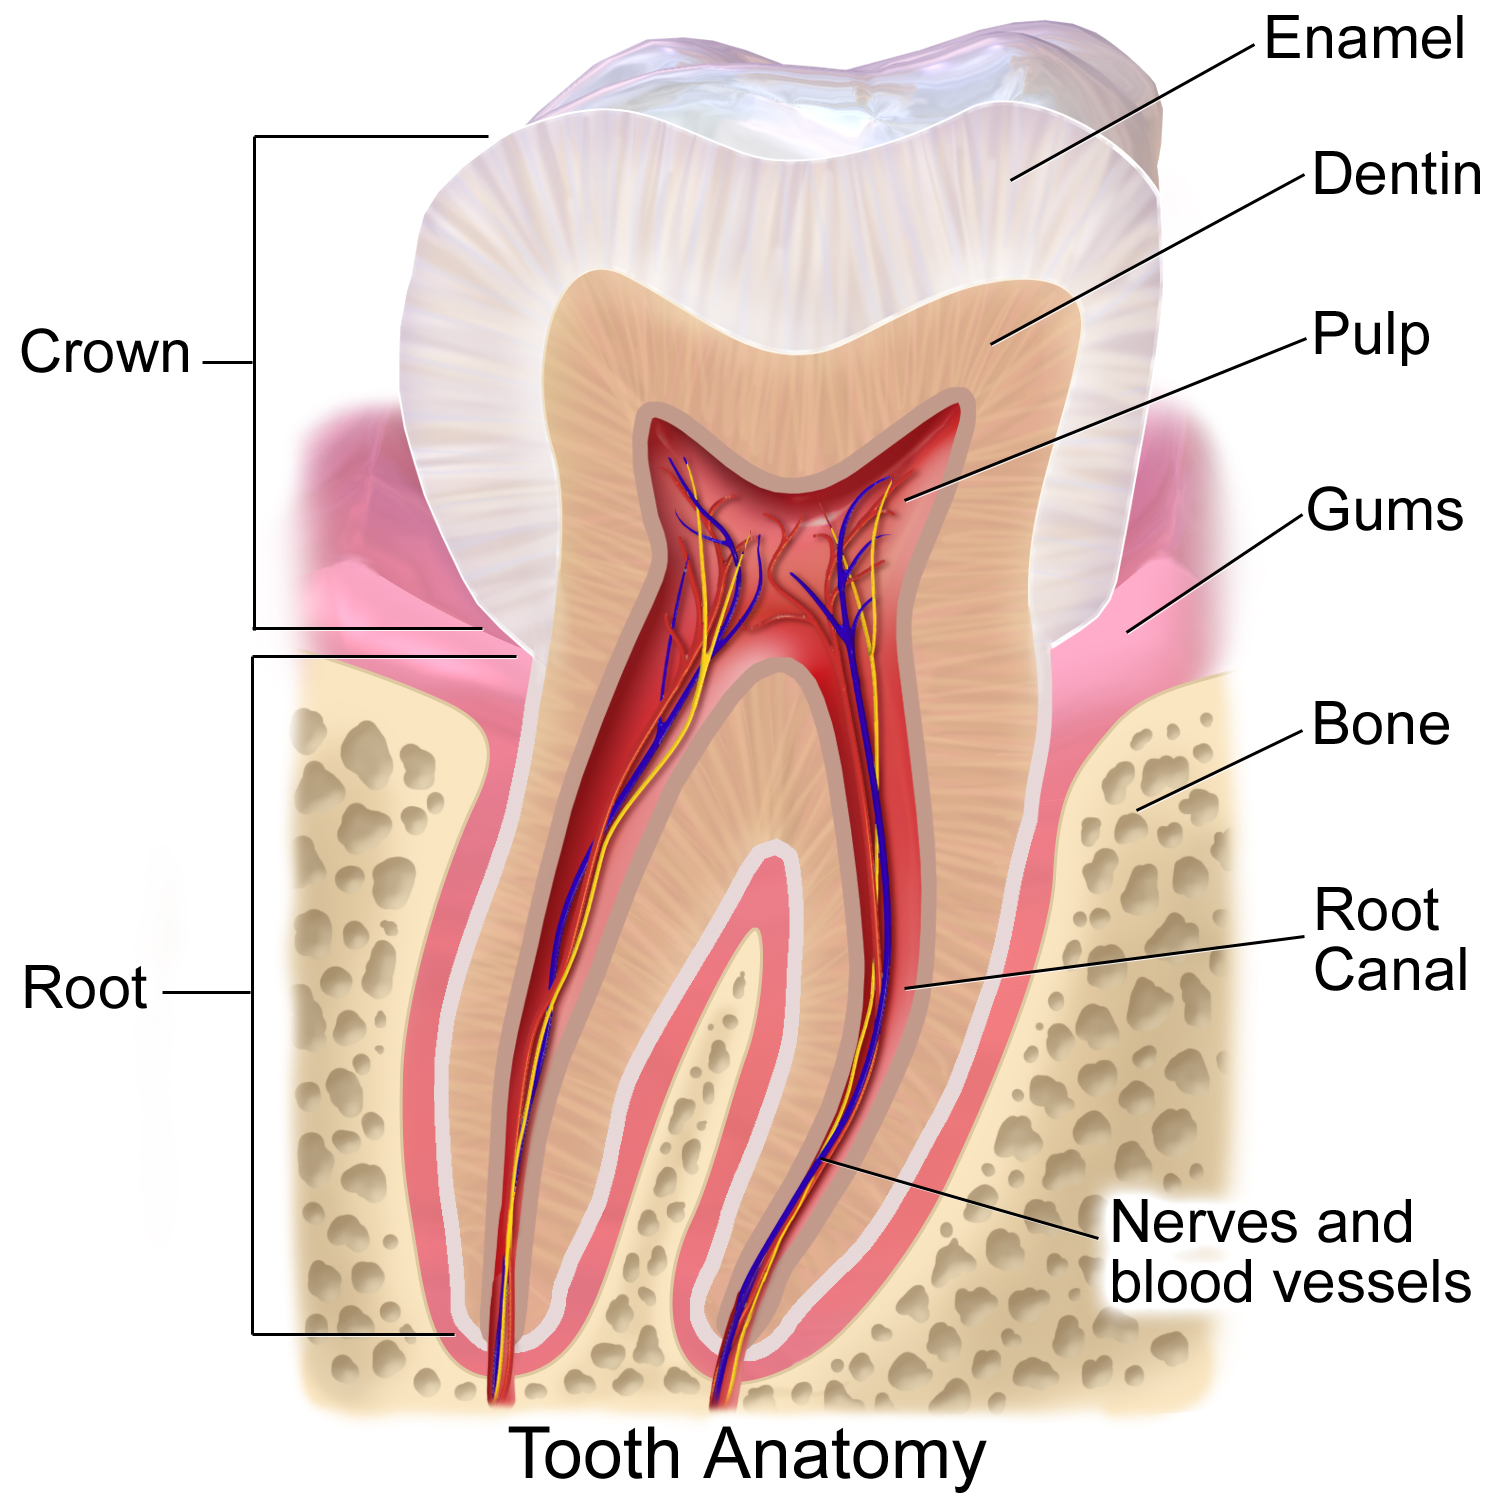 Tooth Anatomy - Normal Tooth